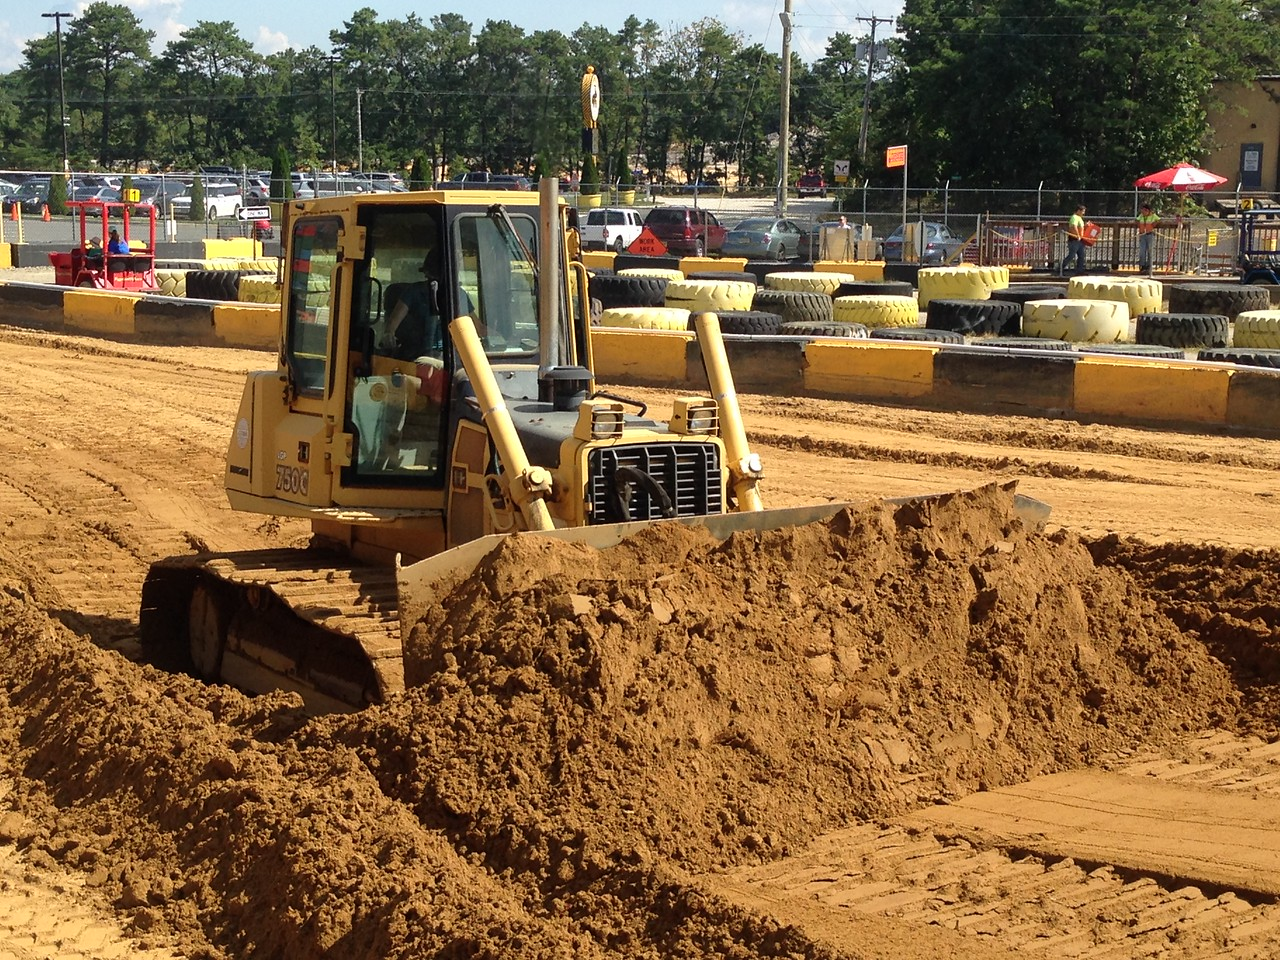 The trick is to keep the blade low enough to keep gathering dirt, but high enough that the dozer can keep moving forward.